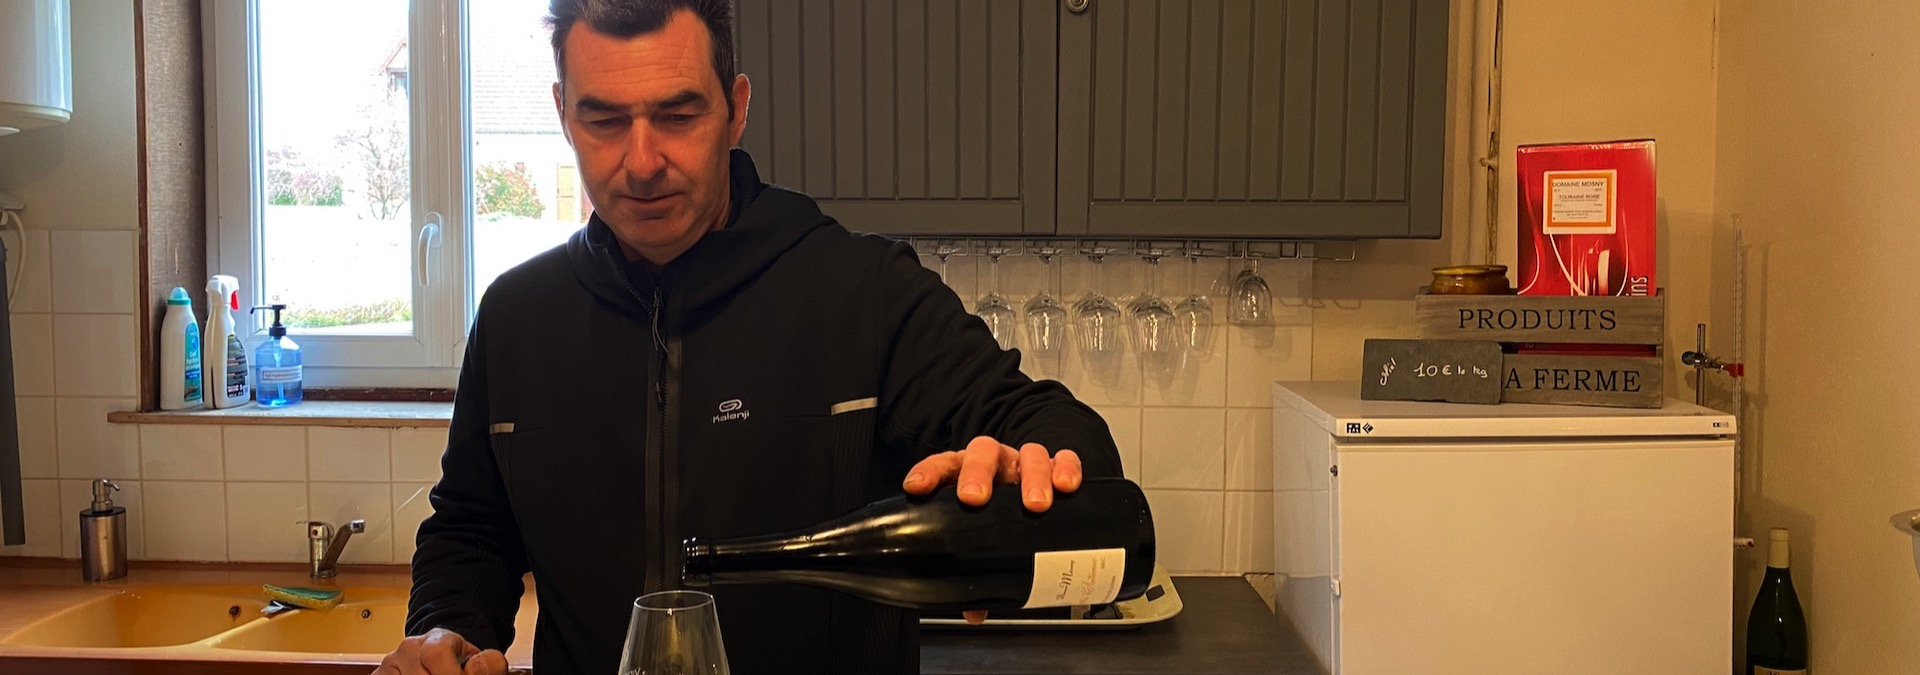 Discovery of the Chenin blanc